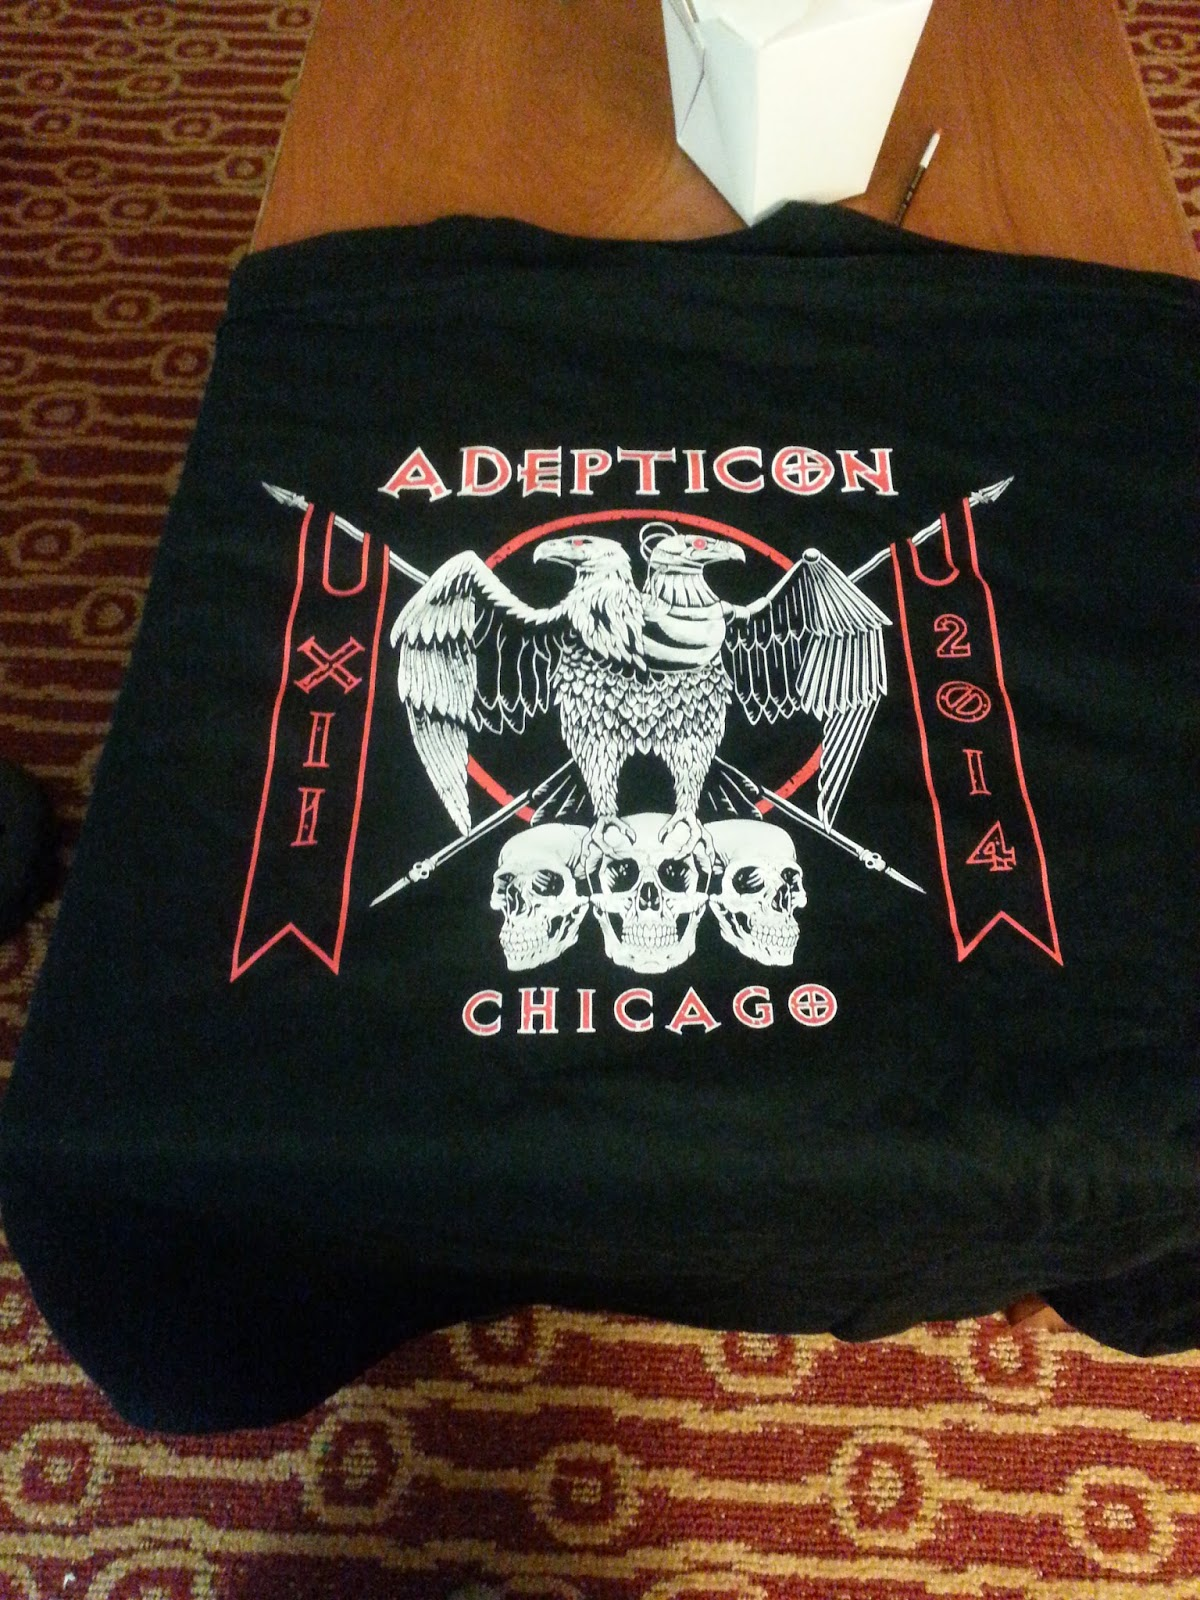 1650240a I also swung by the merch booth and picked up the requisite t-shirt: